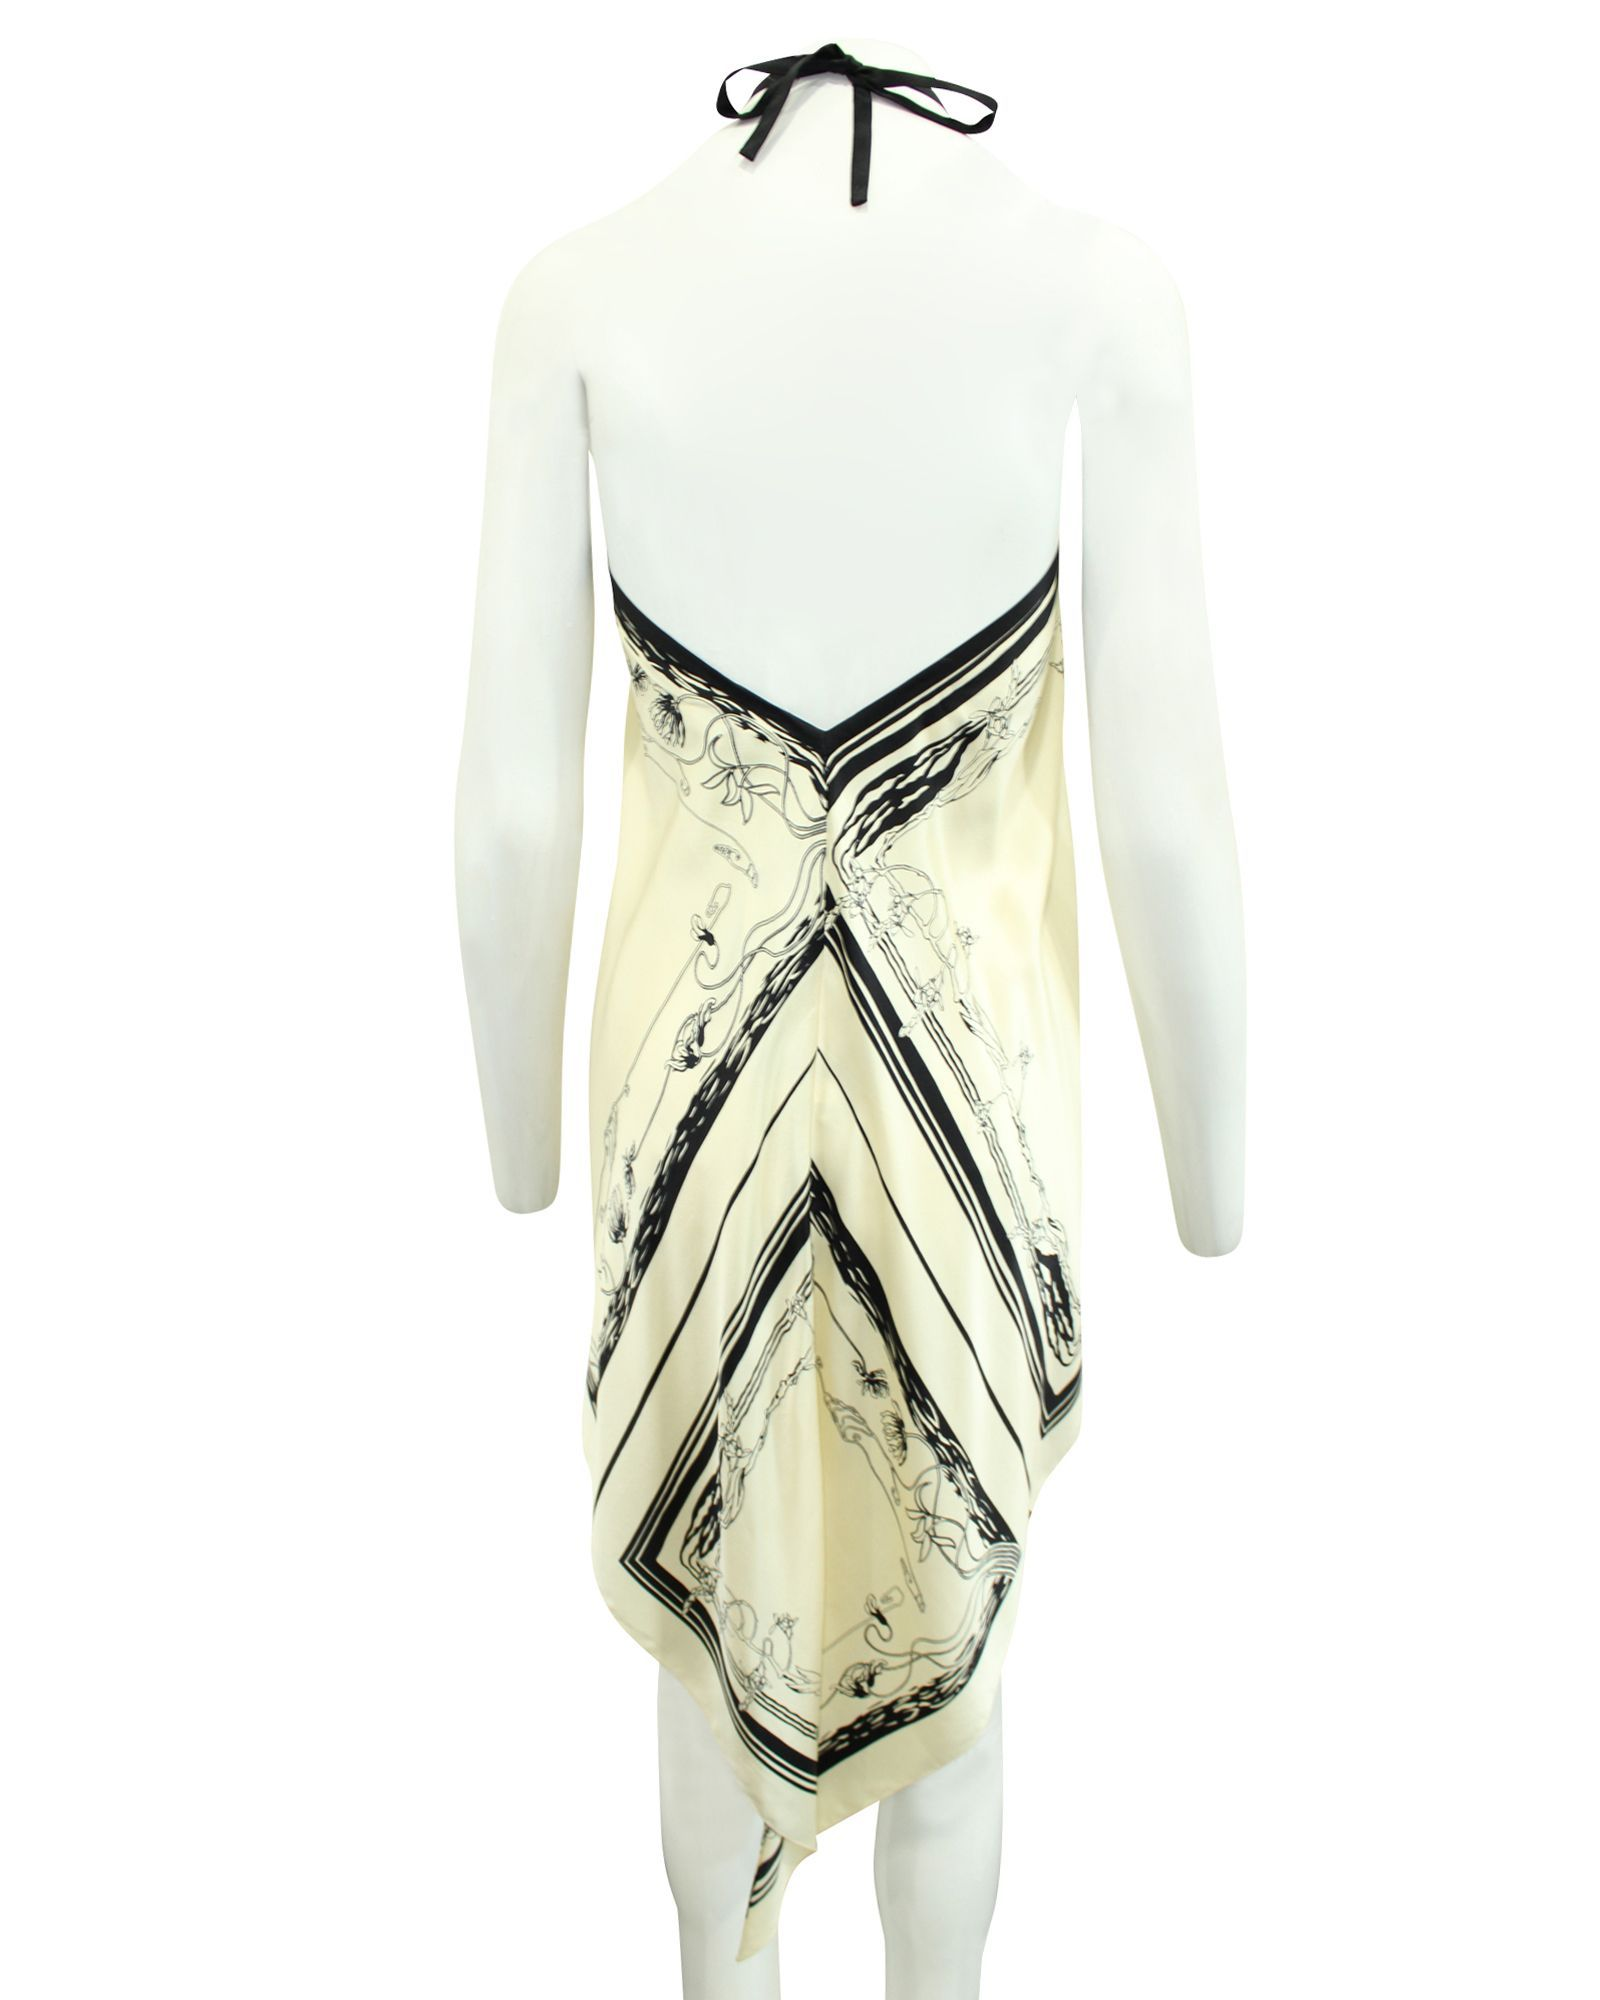 Hermès Silk Top -Pre Owned Condition Excellent